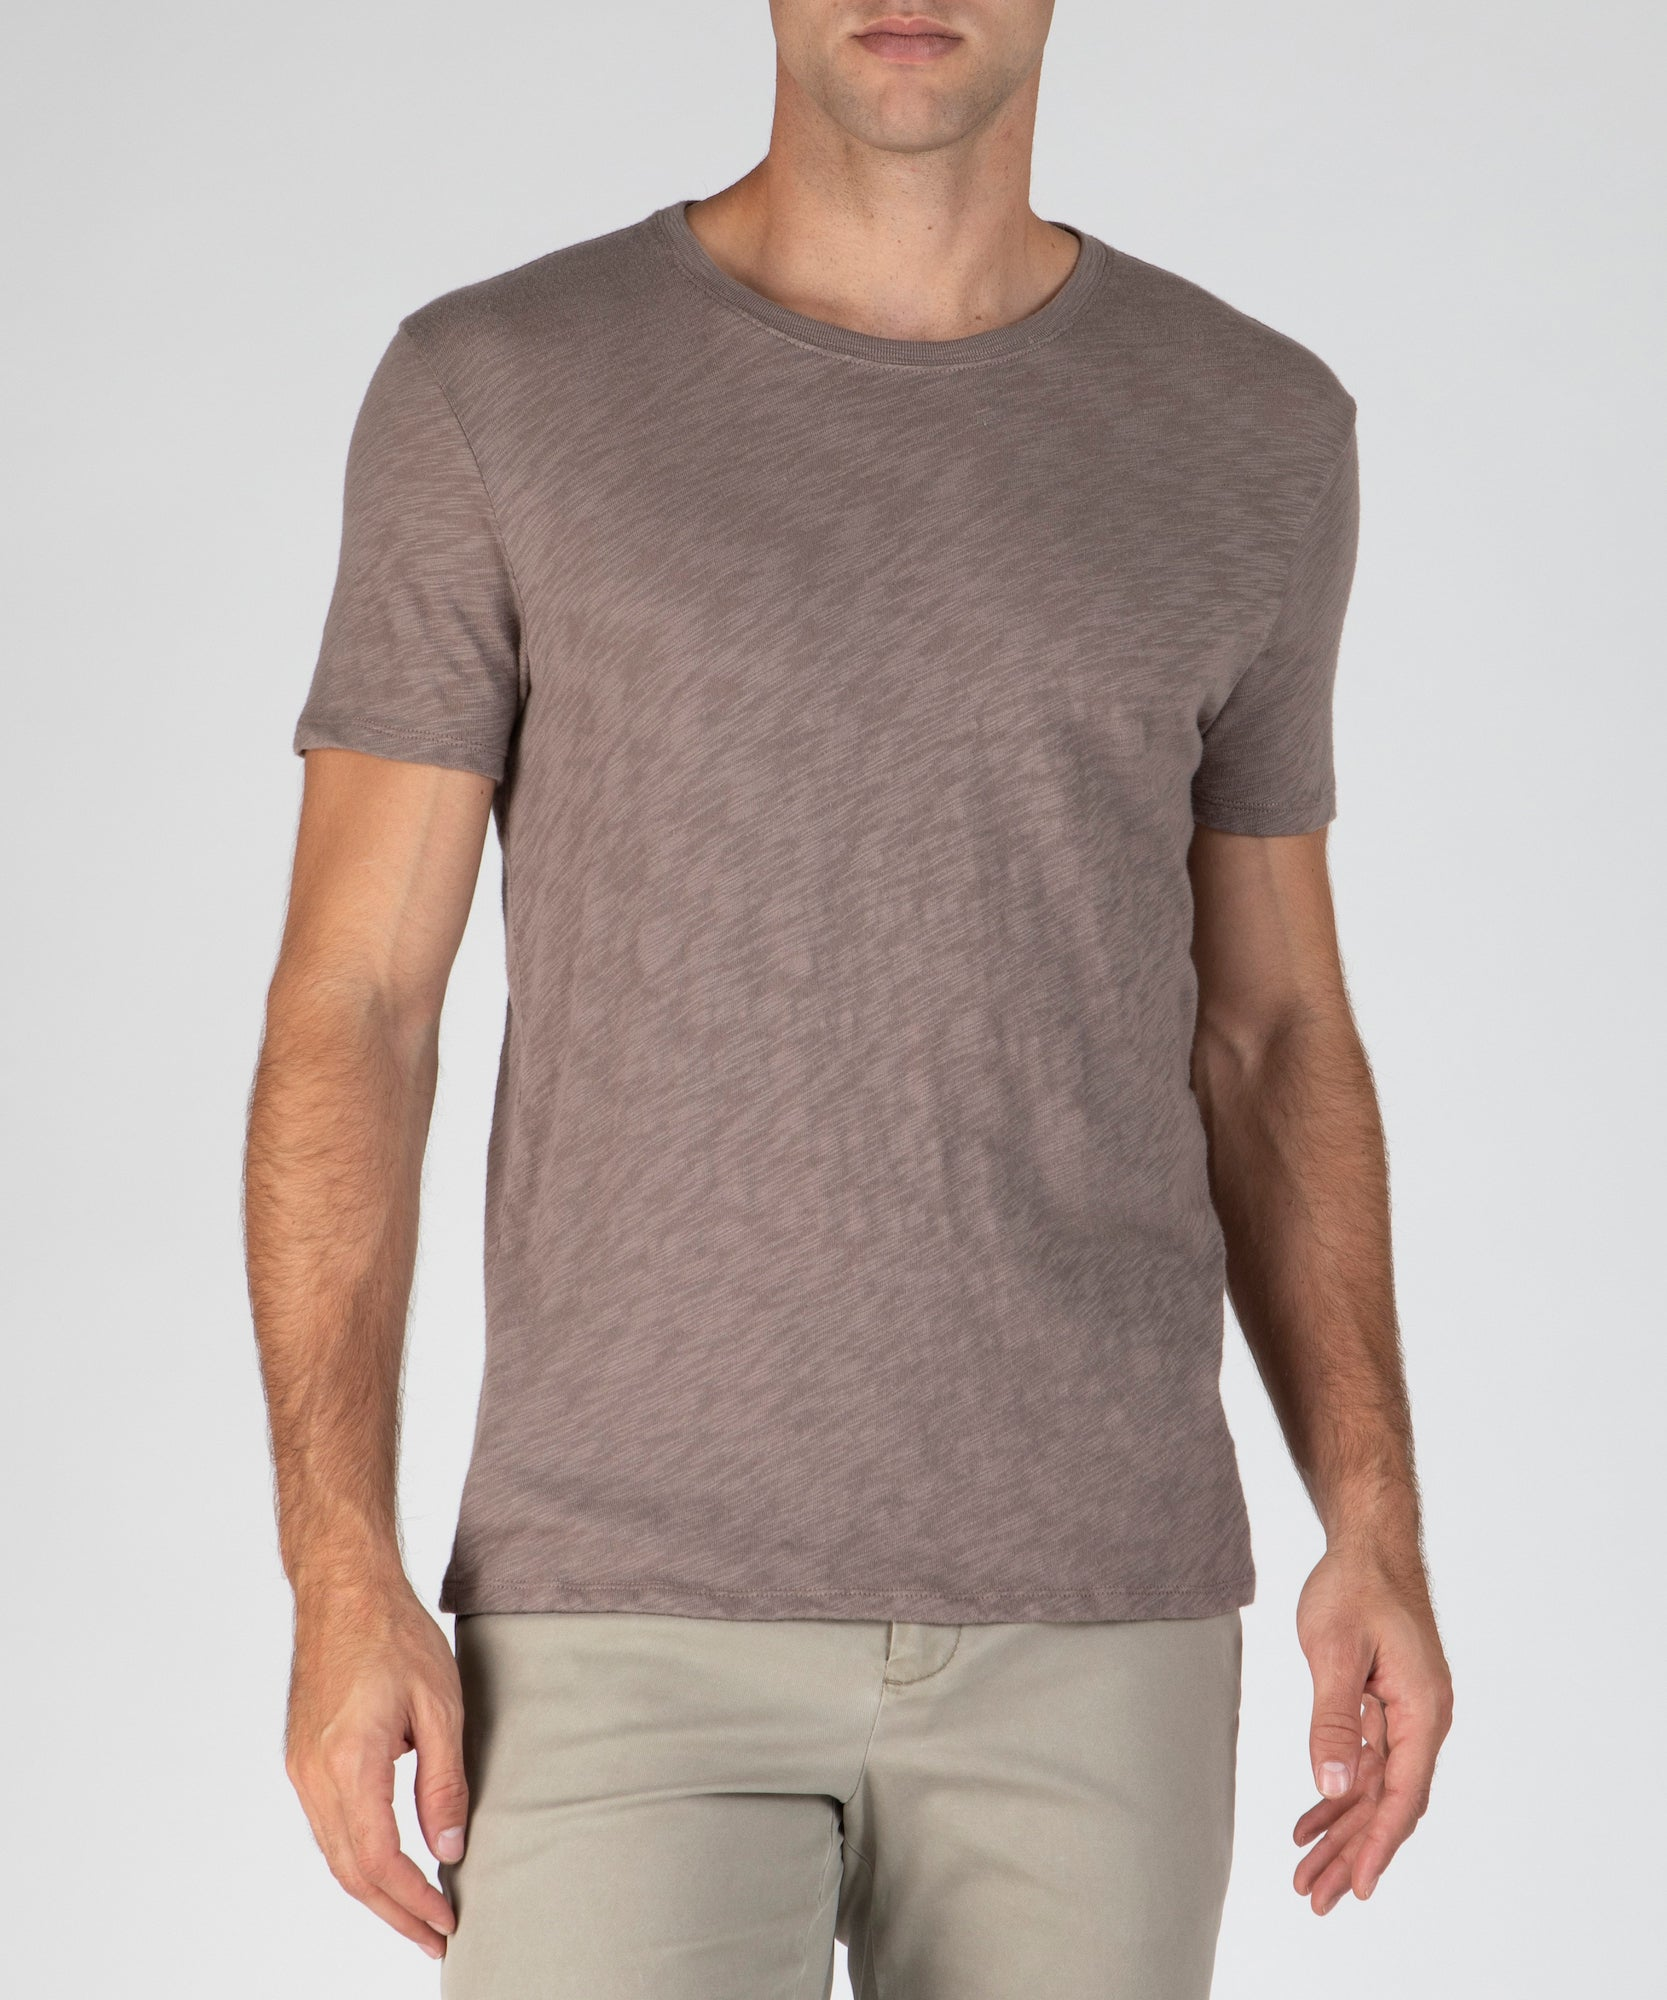 Driftwood Slub Jersey Crew Neck Tee - Men's Cotton Short Sleeve Tee by ATM Anthony Thomas Melillo